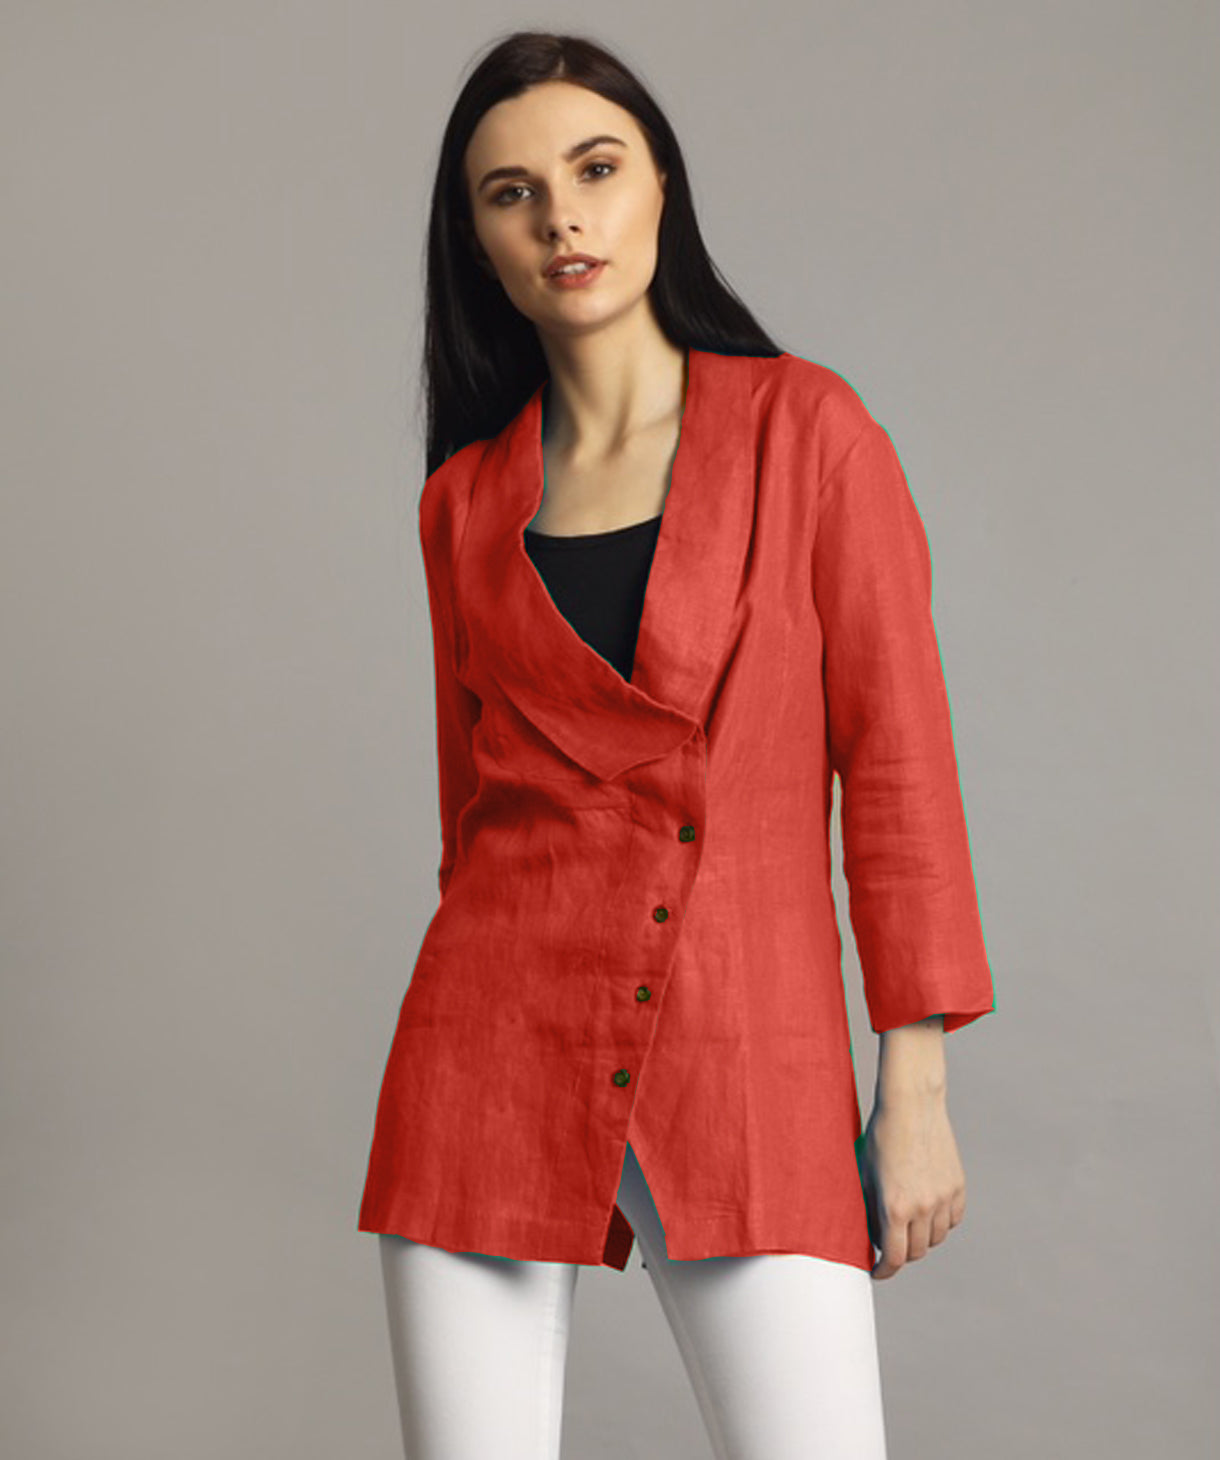 Coral Linen Jacket Style Tunic